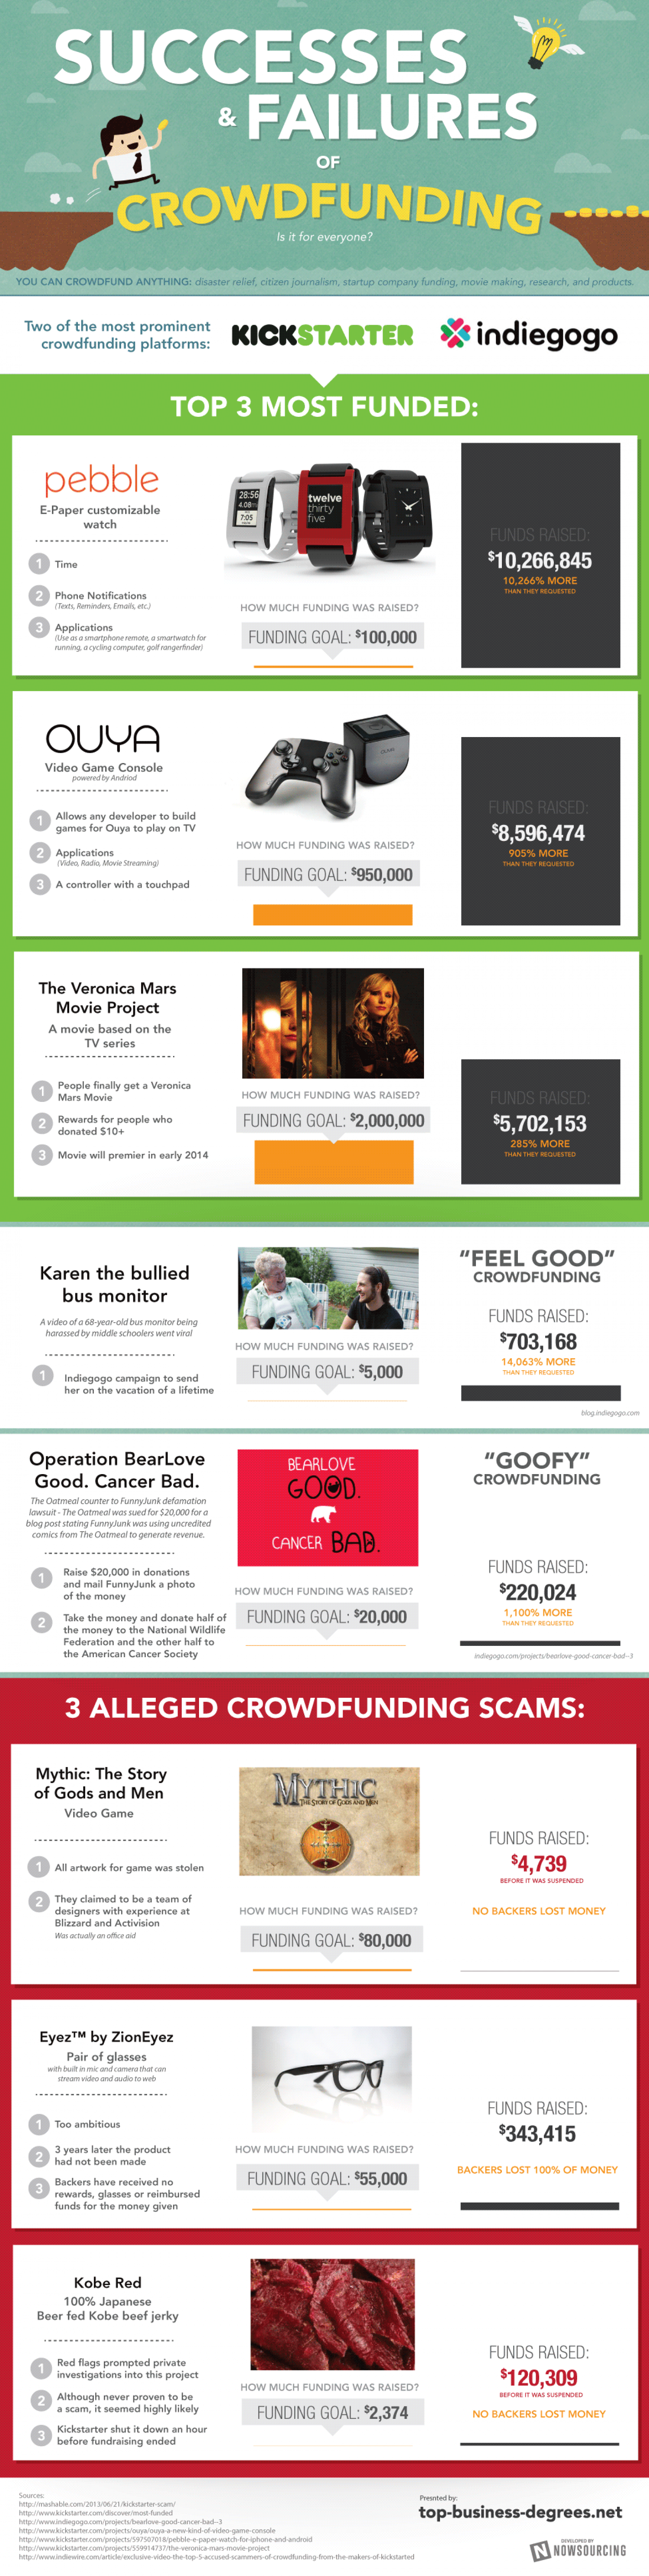 Successes and Failures of Crowdfunding Infographic